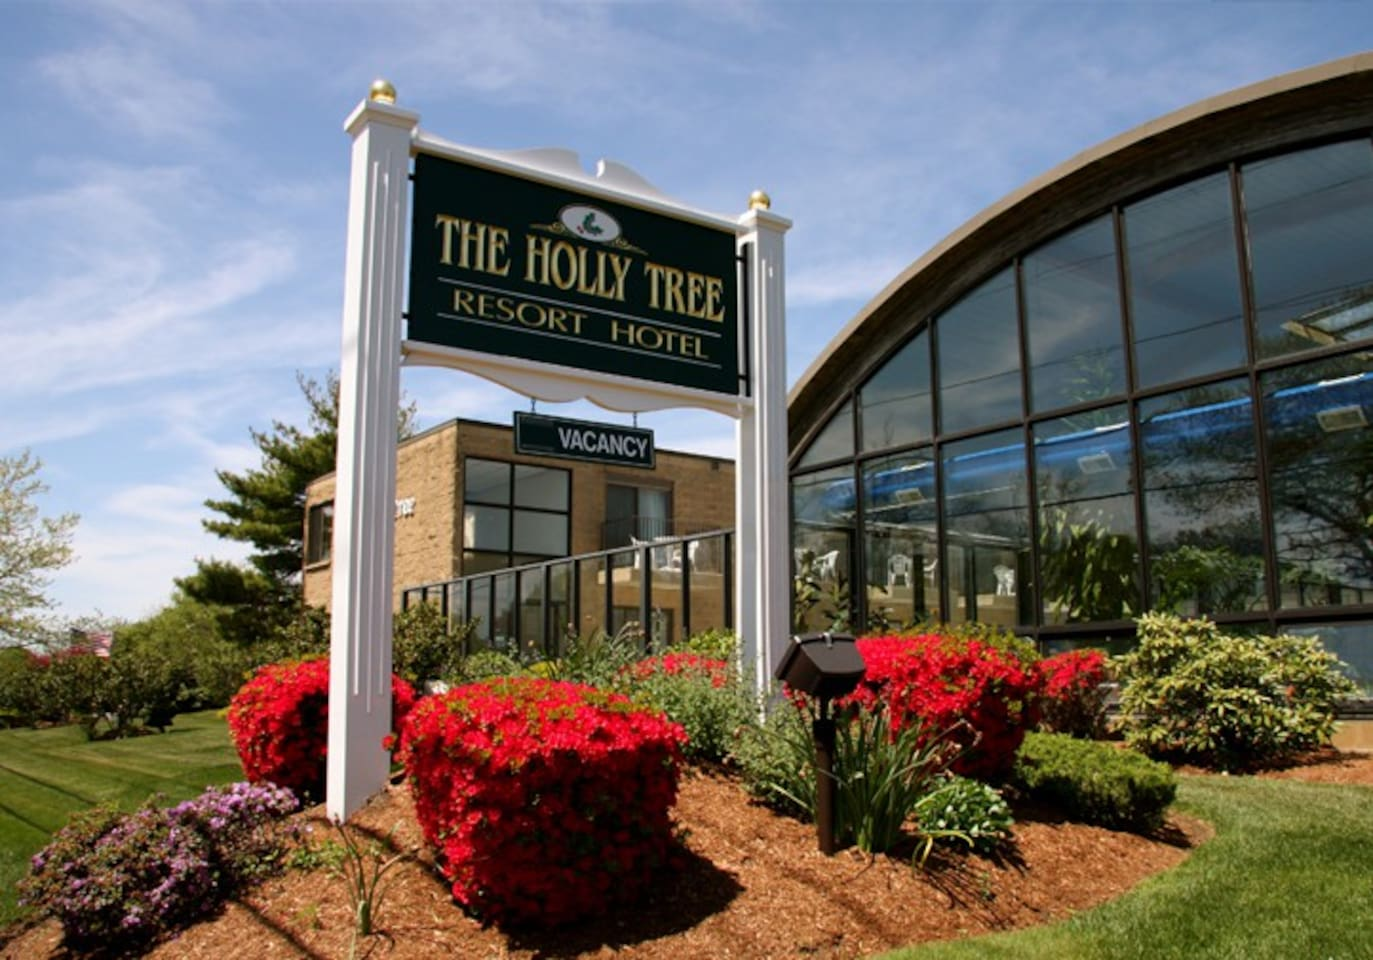 The Holly Tree Resort is located in the heart of historic Cape Cod